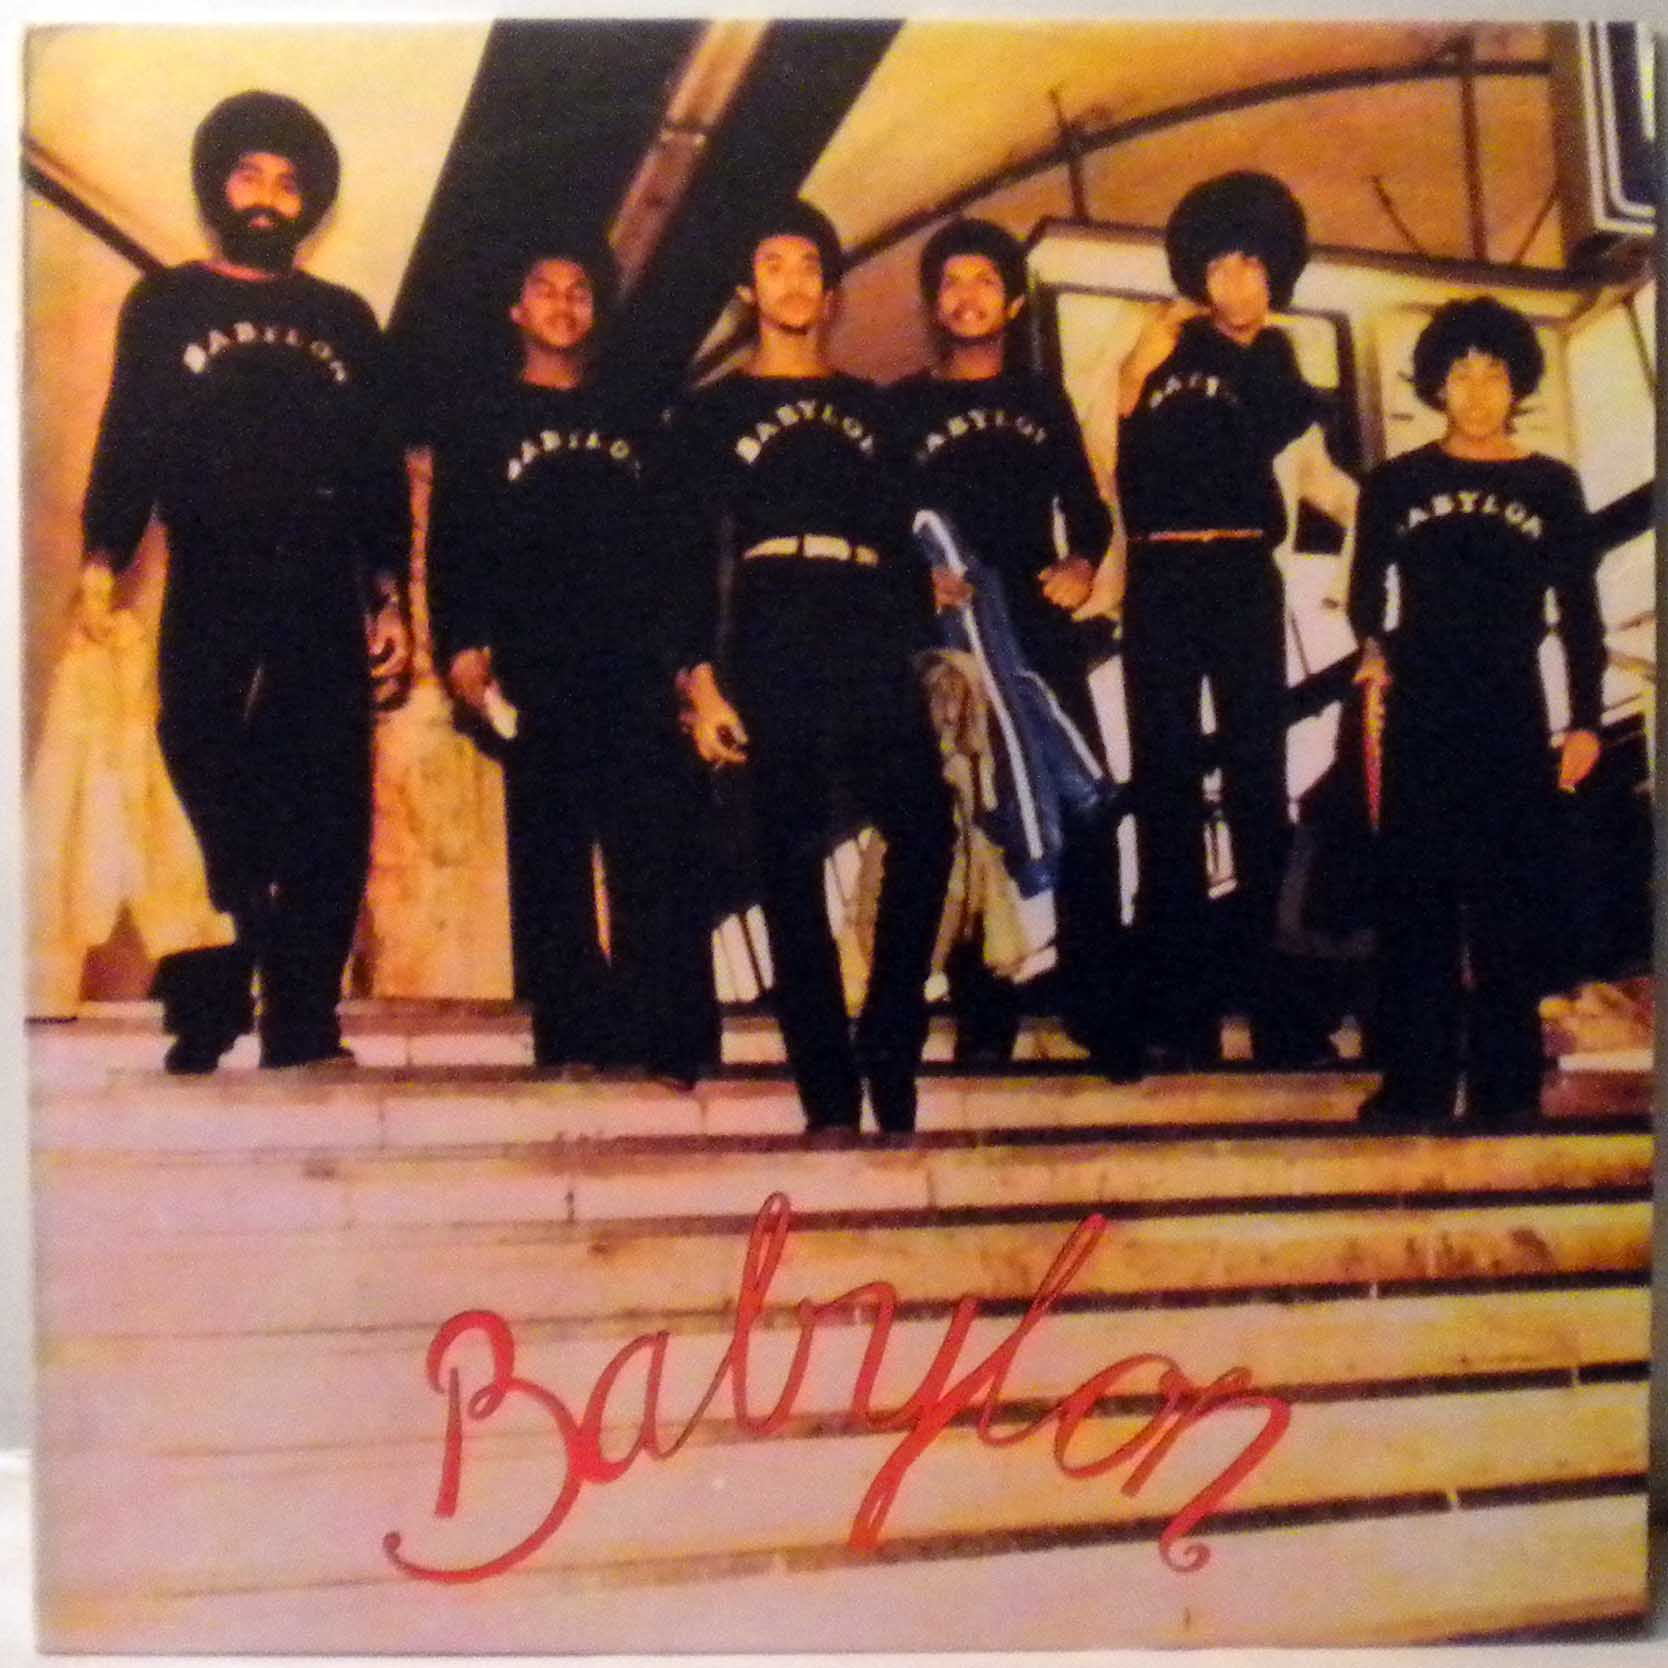 BABYLON - Same - LP